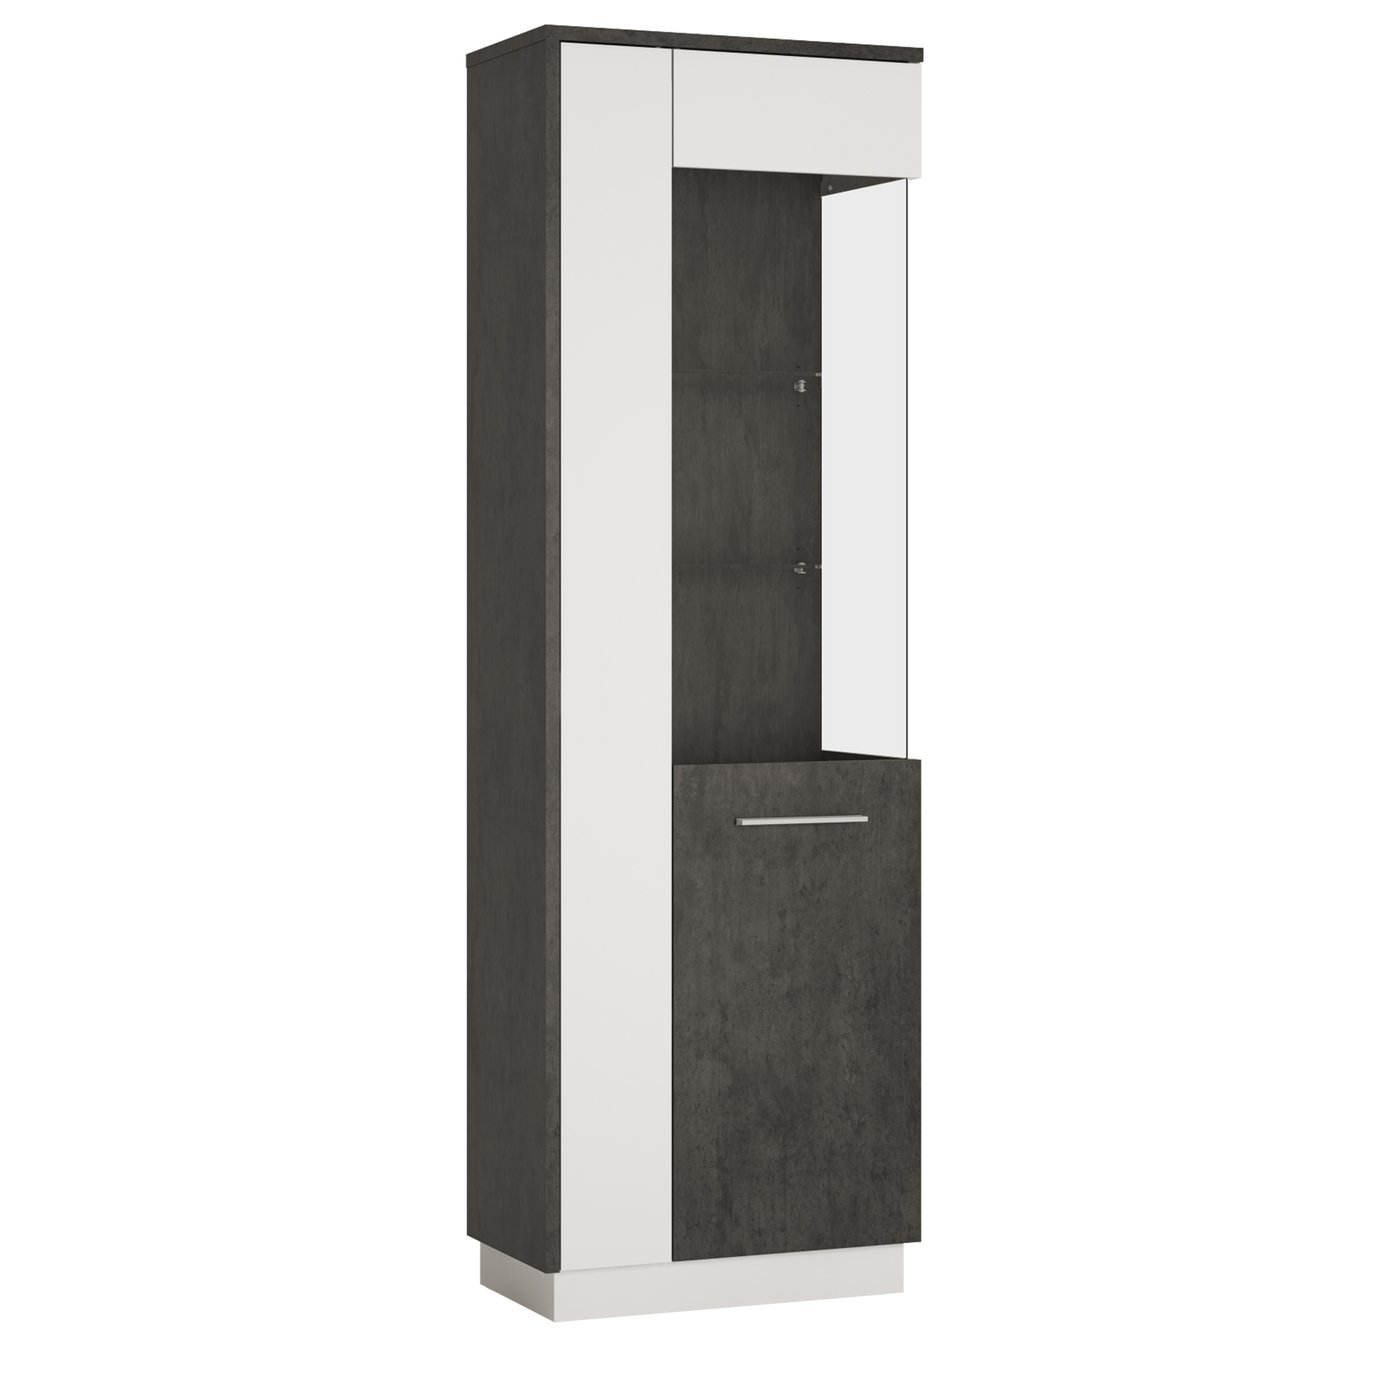 Solan 1 Door Right Hand Display Cabinet - Grey & White